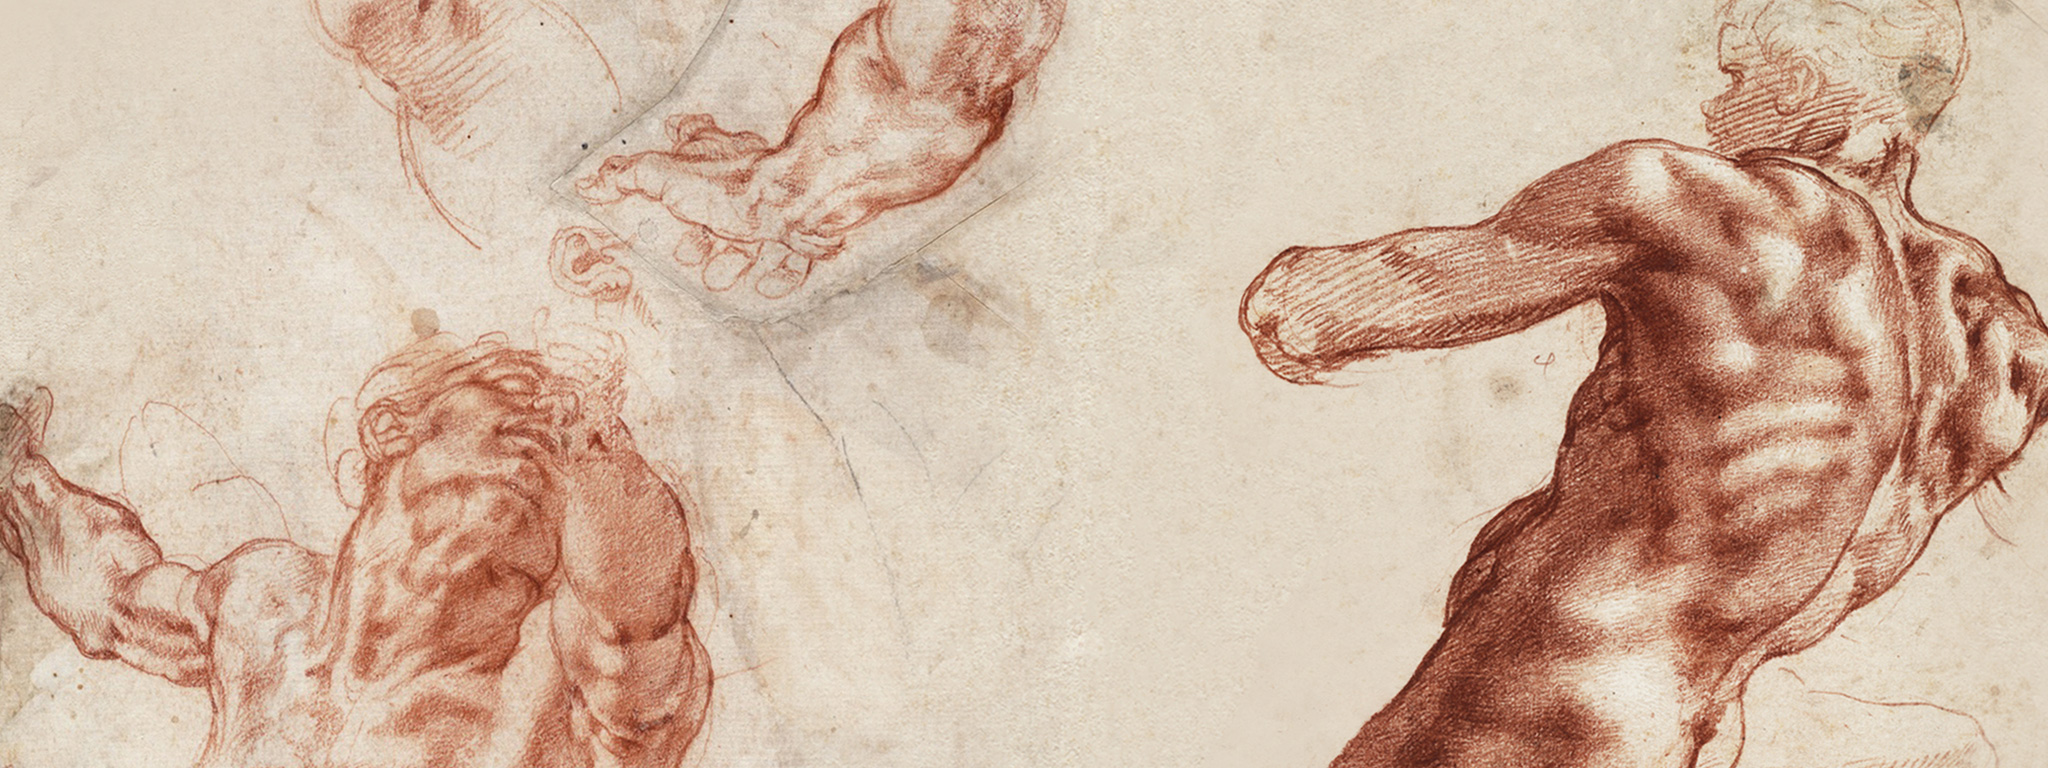 Studies of the upper body of a man and separate studies of an arm, a hand, and an ear; sketch of a tree, recto (detail), 1511–12, Michelangelo Buonarroti, red chalks and black chalk. Teylers Museum, Haarlem. Purchased in 1790. © Teylers Museum, Haarlem. Seated male nude, separate study of his right arm, recto (detail), 1511, Michelangelo Buonarroti, red chalk heightened with white. Teylers Museum, Haarlem, purchased in 1790. © Teylers Museum, Haarlem